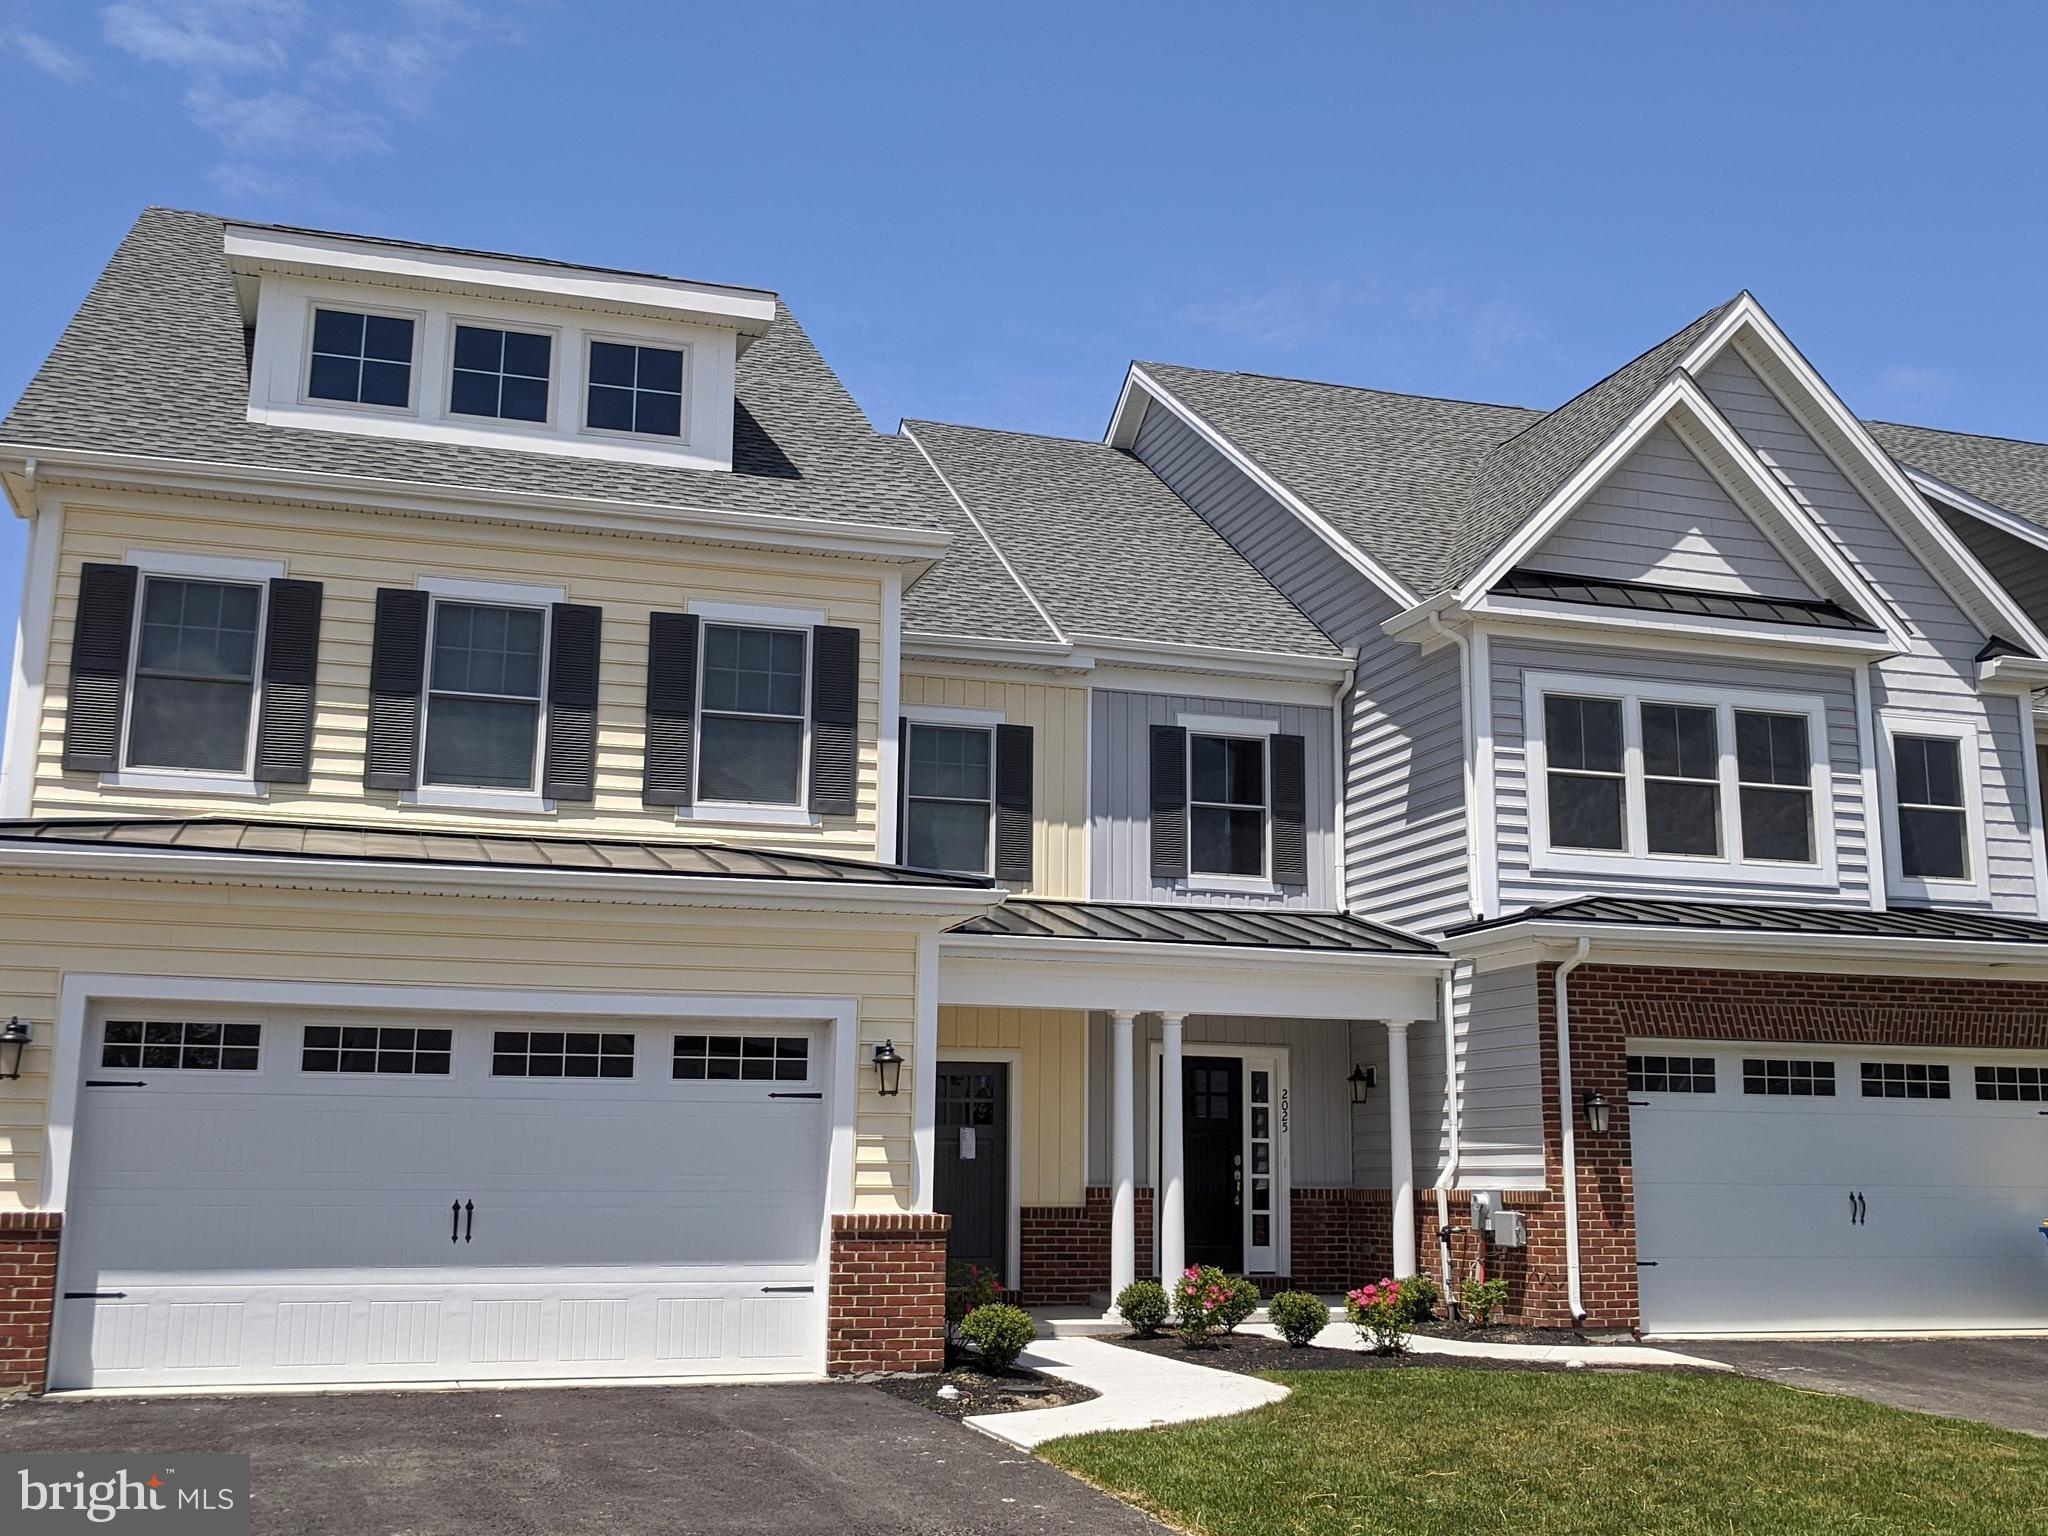 "QUICK DELIVERY FALL 2020! Overlooking the lovely Branch Canal right on the waterside, this brand new custom carriage-style townhome is a unique opportunity in New Castle County.  Located in The Canal District at Fort DuPont, The Newbold is truly a magnificent home. This floor plan features  an open concept on the main floor with 3  bedrooms upstairs and a total 2.5 baths. This home also has a 2-car garage. The impressive kitchen is well appointed with granite counter tops, 42"" custom cabinets with trim and soft close hardware and a massive island perfect for entertaining.  The owner's bedroom has serene views and spacious walk-in closet.  Reserve this month to take advantage of the amazing SUMMER INCENTIVE!  The homes are close to downtown and community boat access for outdoor activities year round. With future shops, hotels, restaurants, movie theater and expanded marina, Fort DuPont is the new sought after Riverfront in Delaware and the lifestyle you have always craved.  With Wilmington, Newark, Dover, Christiana and the southern beaches a short drive away, you will love being close to everything yet nestled in a quiet setting. This home is currently under construction/to be built. Photos are for marketing purposes only. The Sales Center is open Monday 2-6pm, Tuesday & Friday 11am-6pm, Saturday & Sunday 12-5pm. Call 302-898-2010 to schedule an appointment.  GPS: 260 New Castle Avenue. Delaware City, DE 19706."